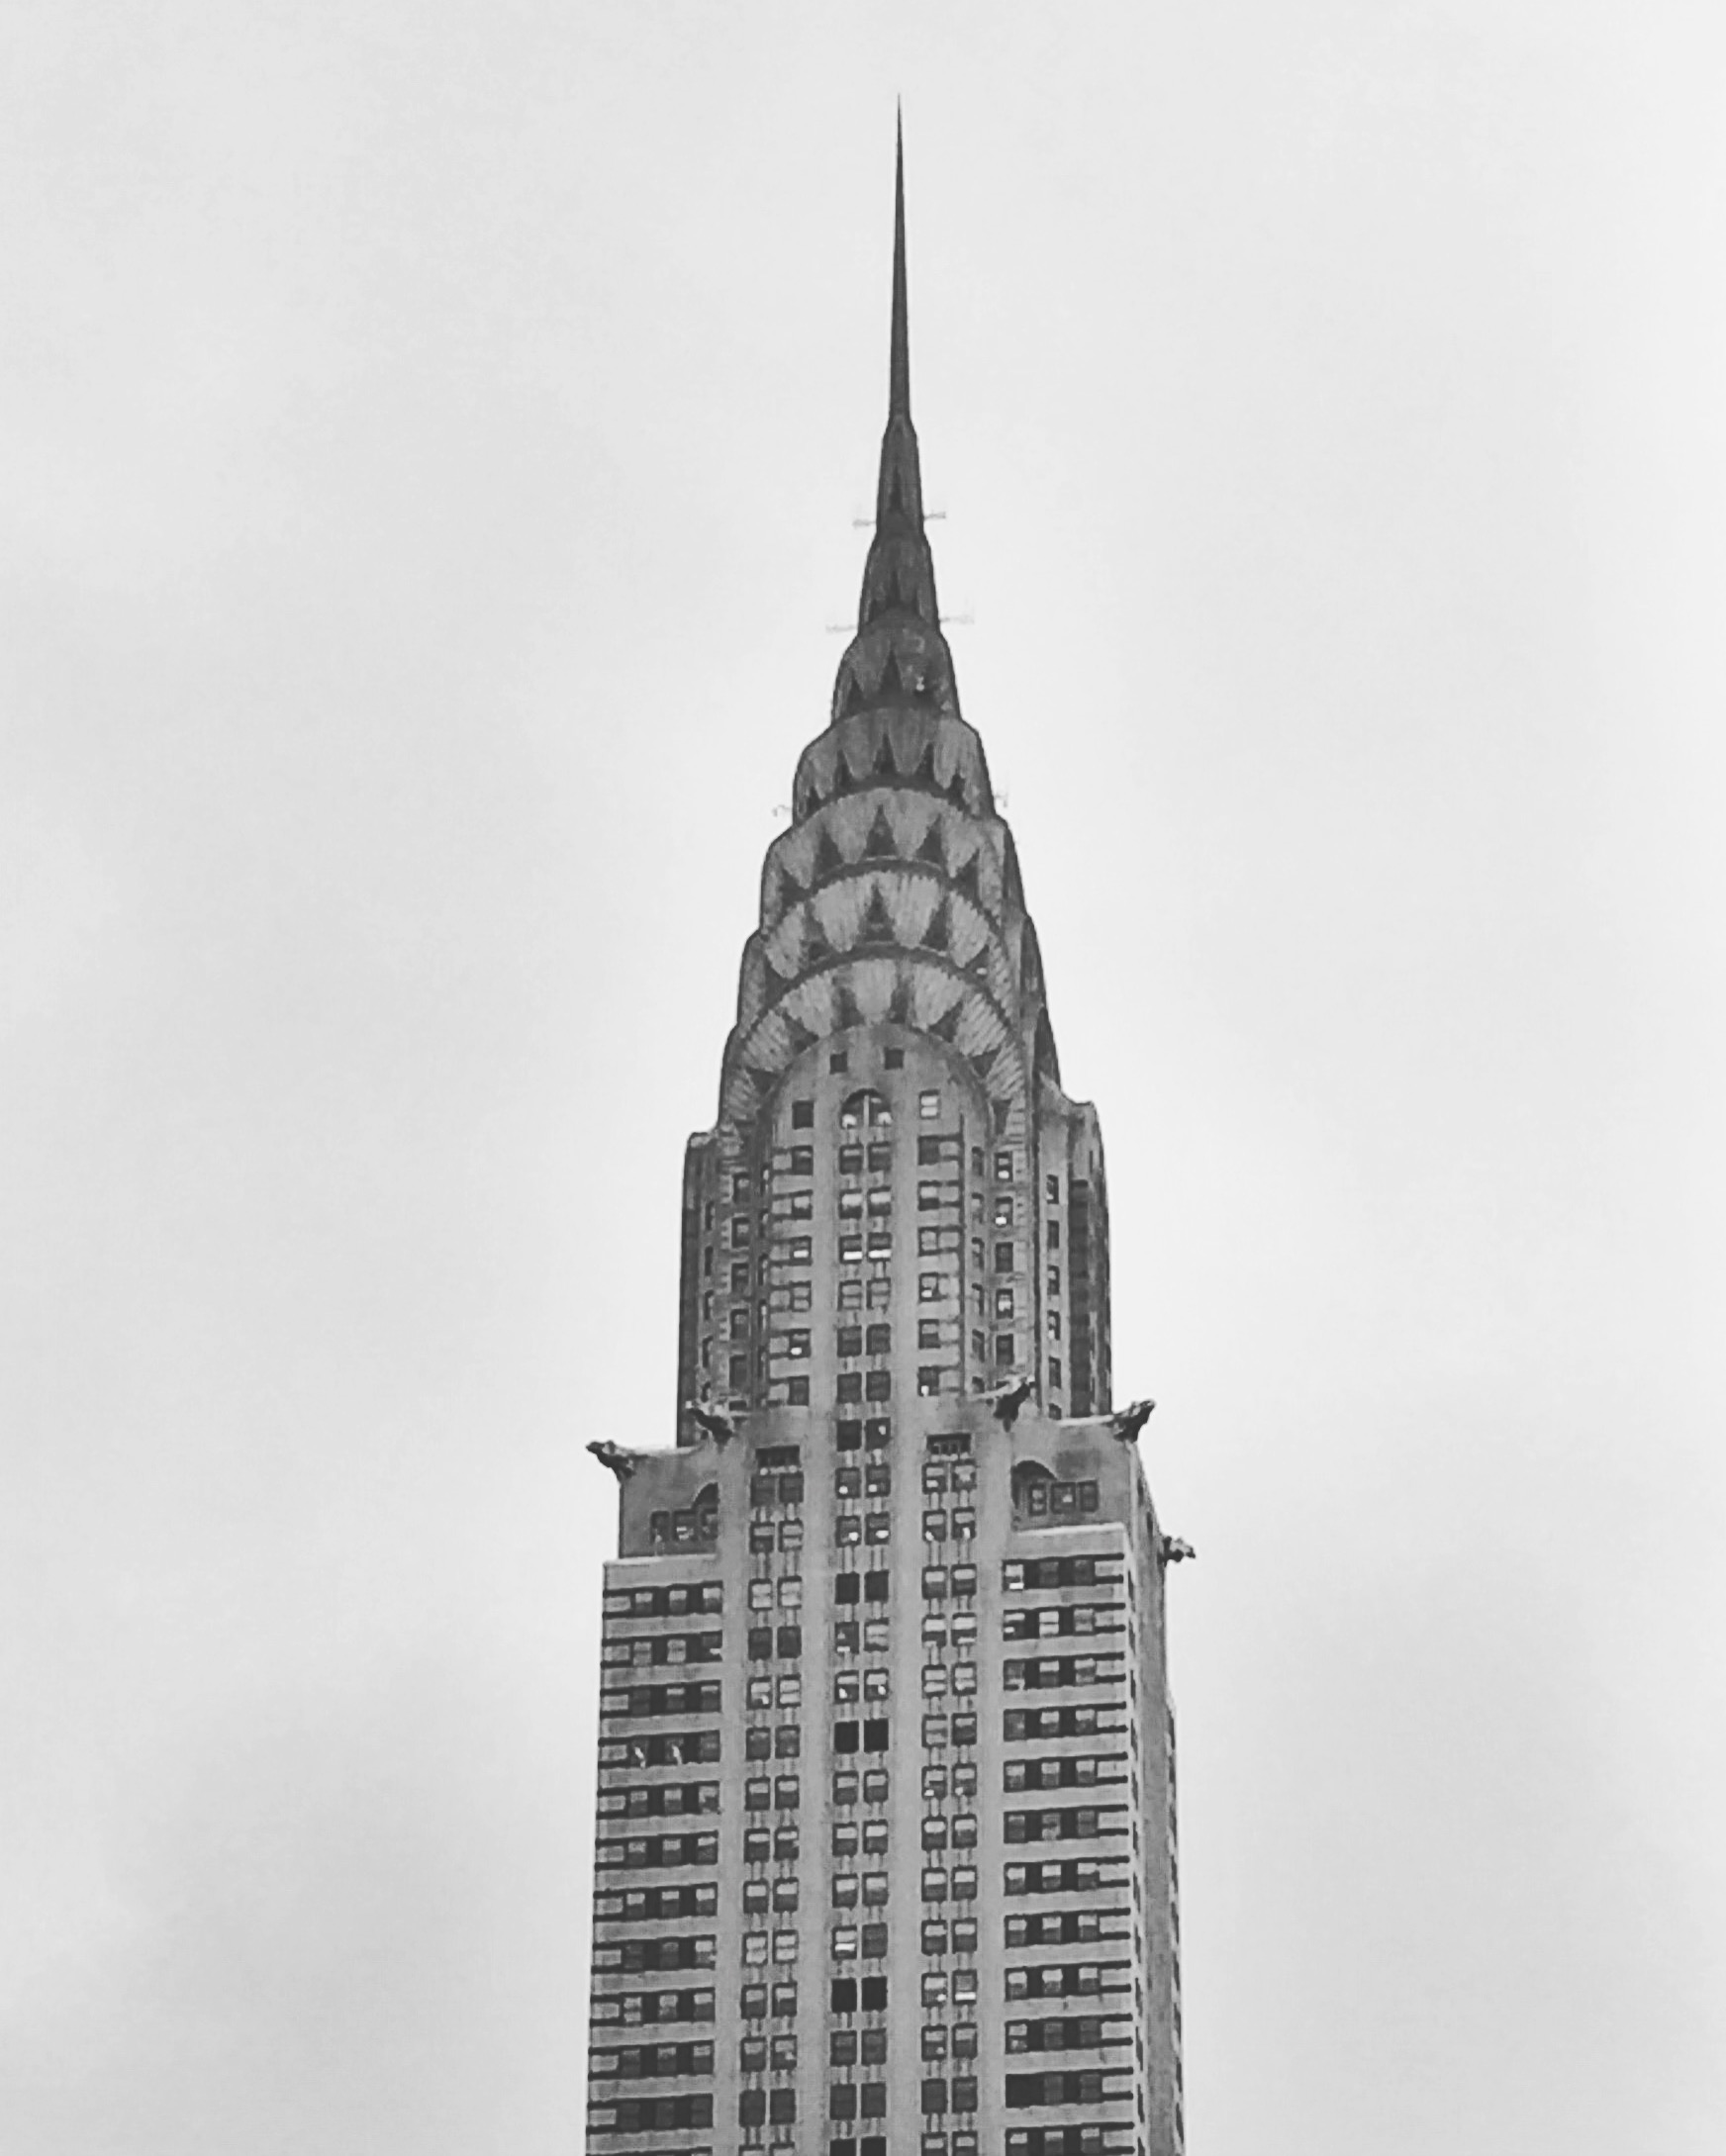 The Chrysler Building.  Copyright Donna Shoots 2017 All Rights Reserved.